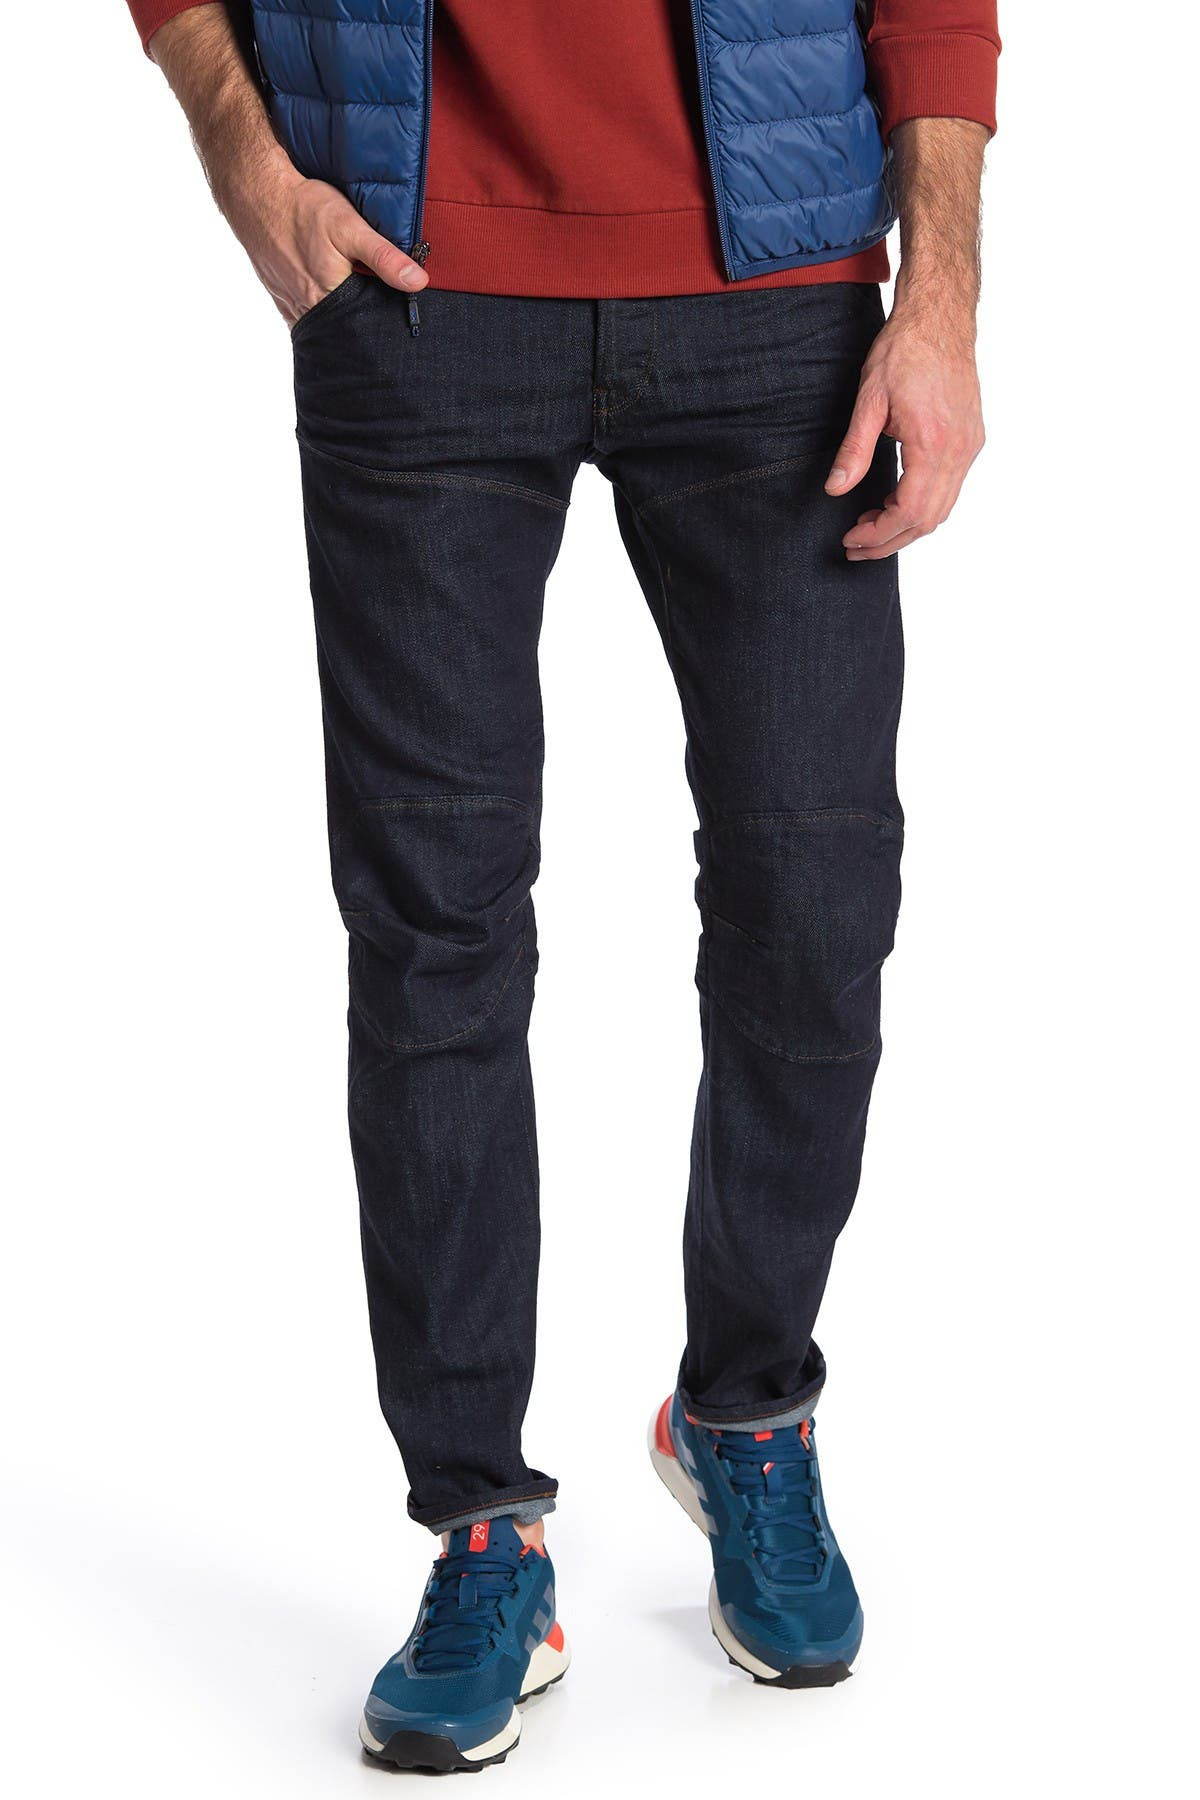 Image of G-STAR RAW 5620 Deconstructed Tapered Leg Jean